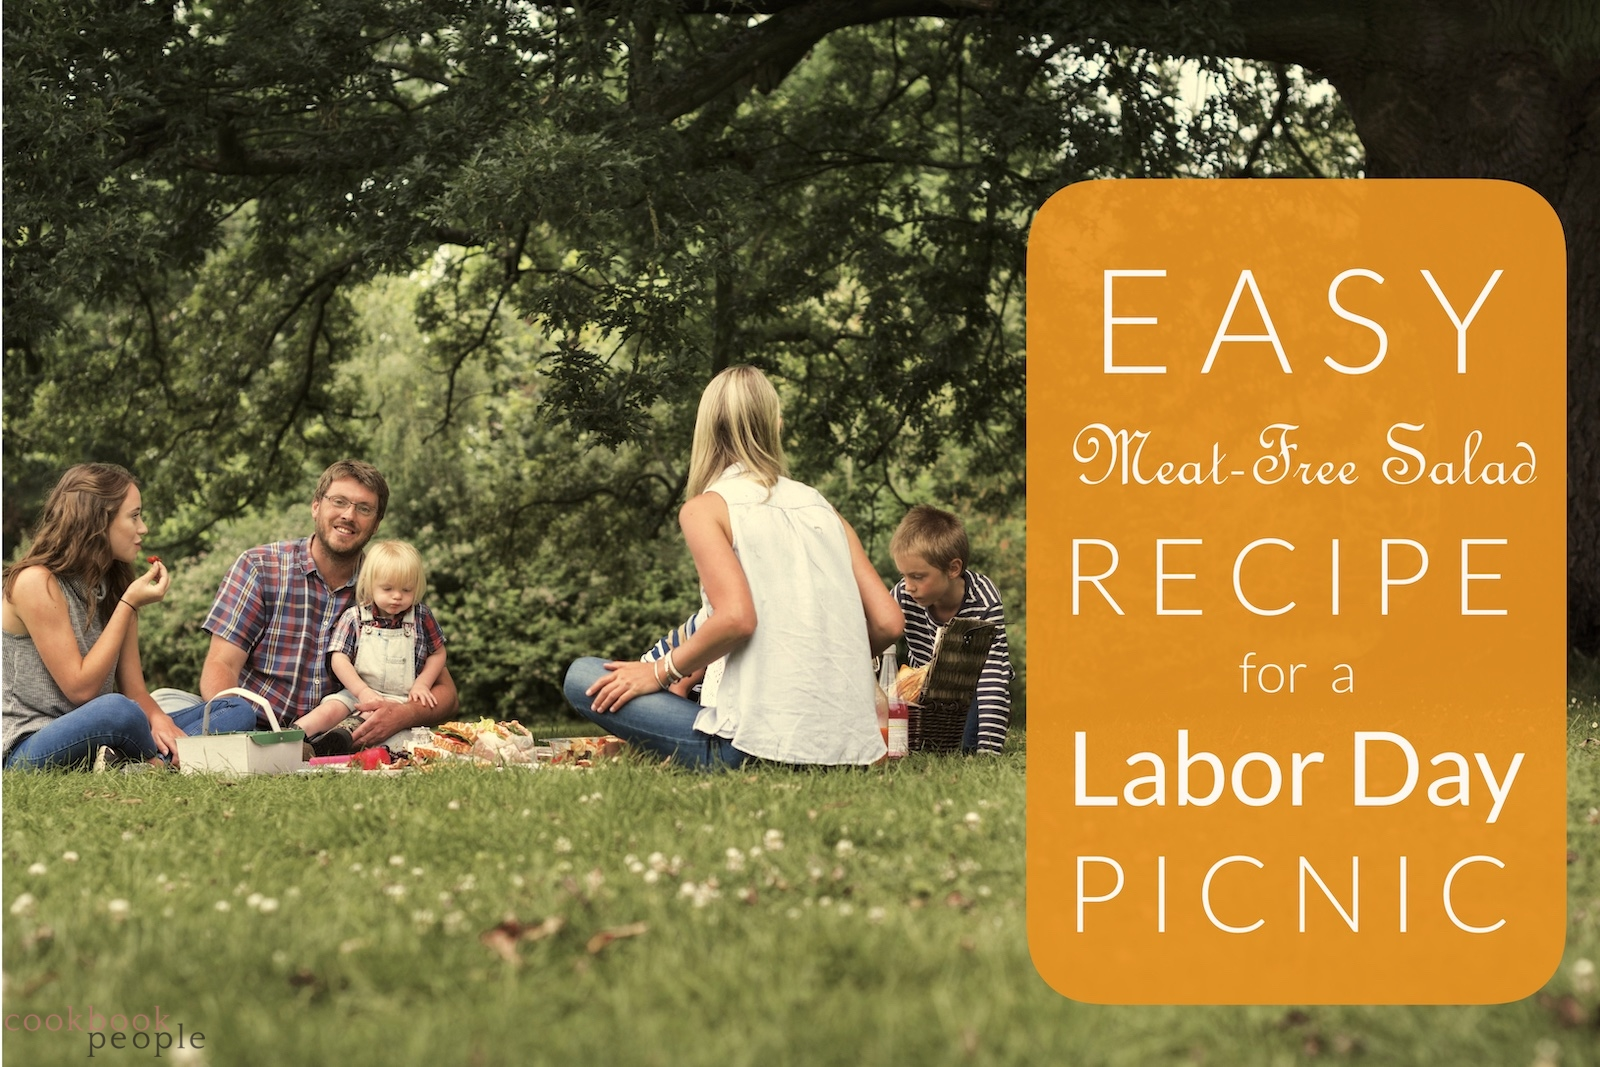 Family picnic with text: Easy Meat-free Salad Recipe for Labor Day Picnic